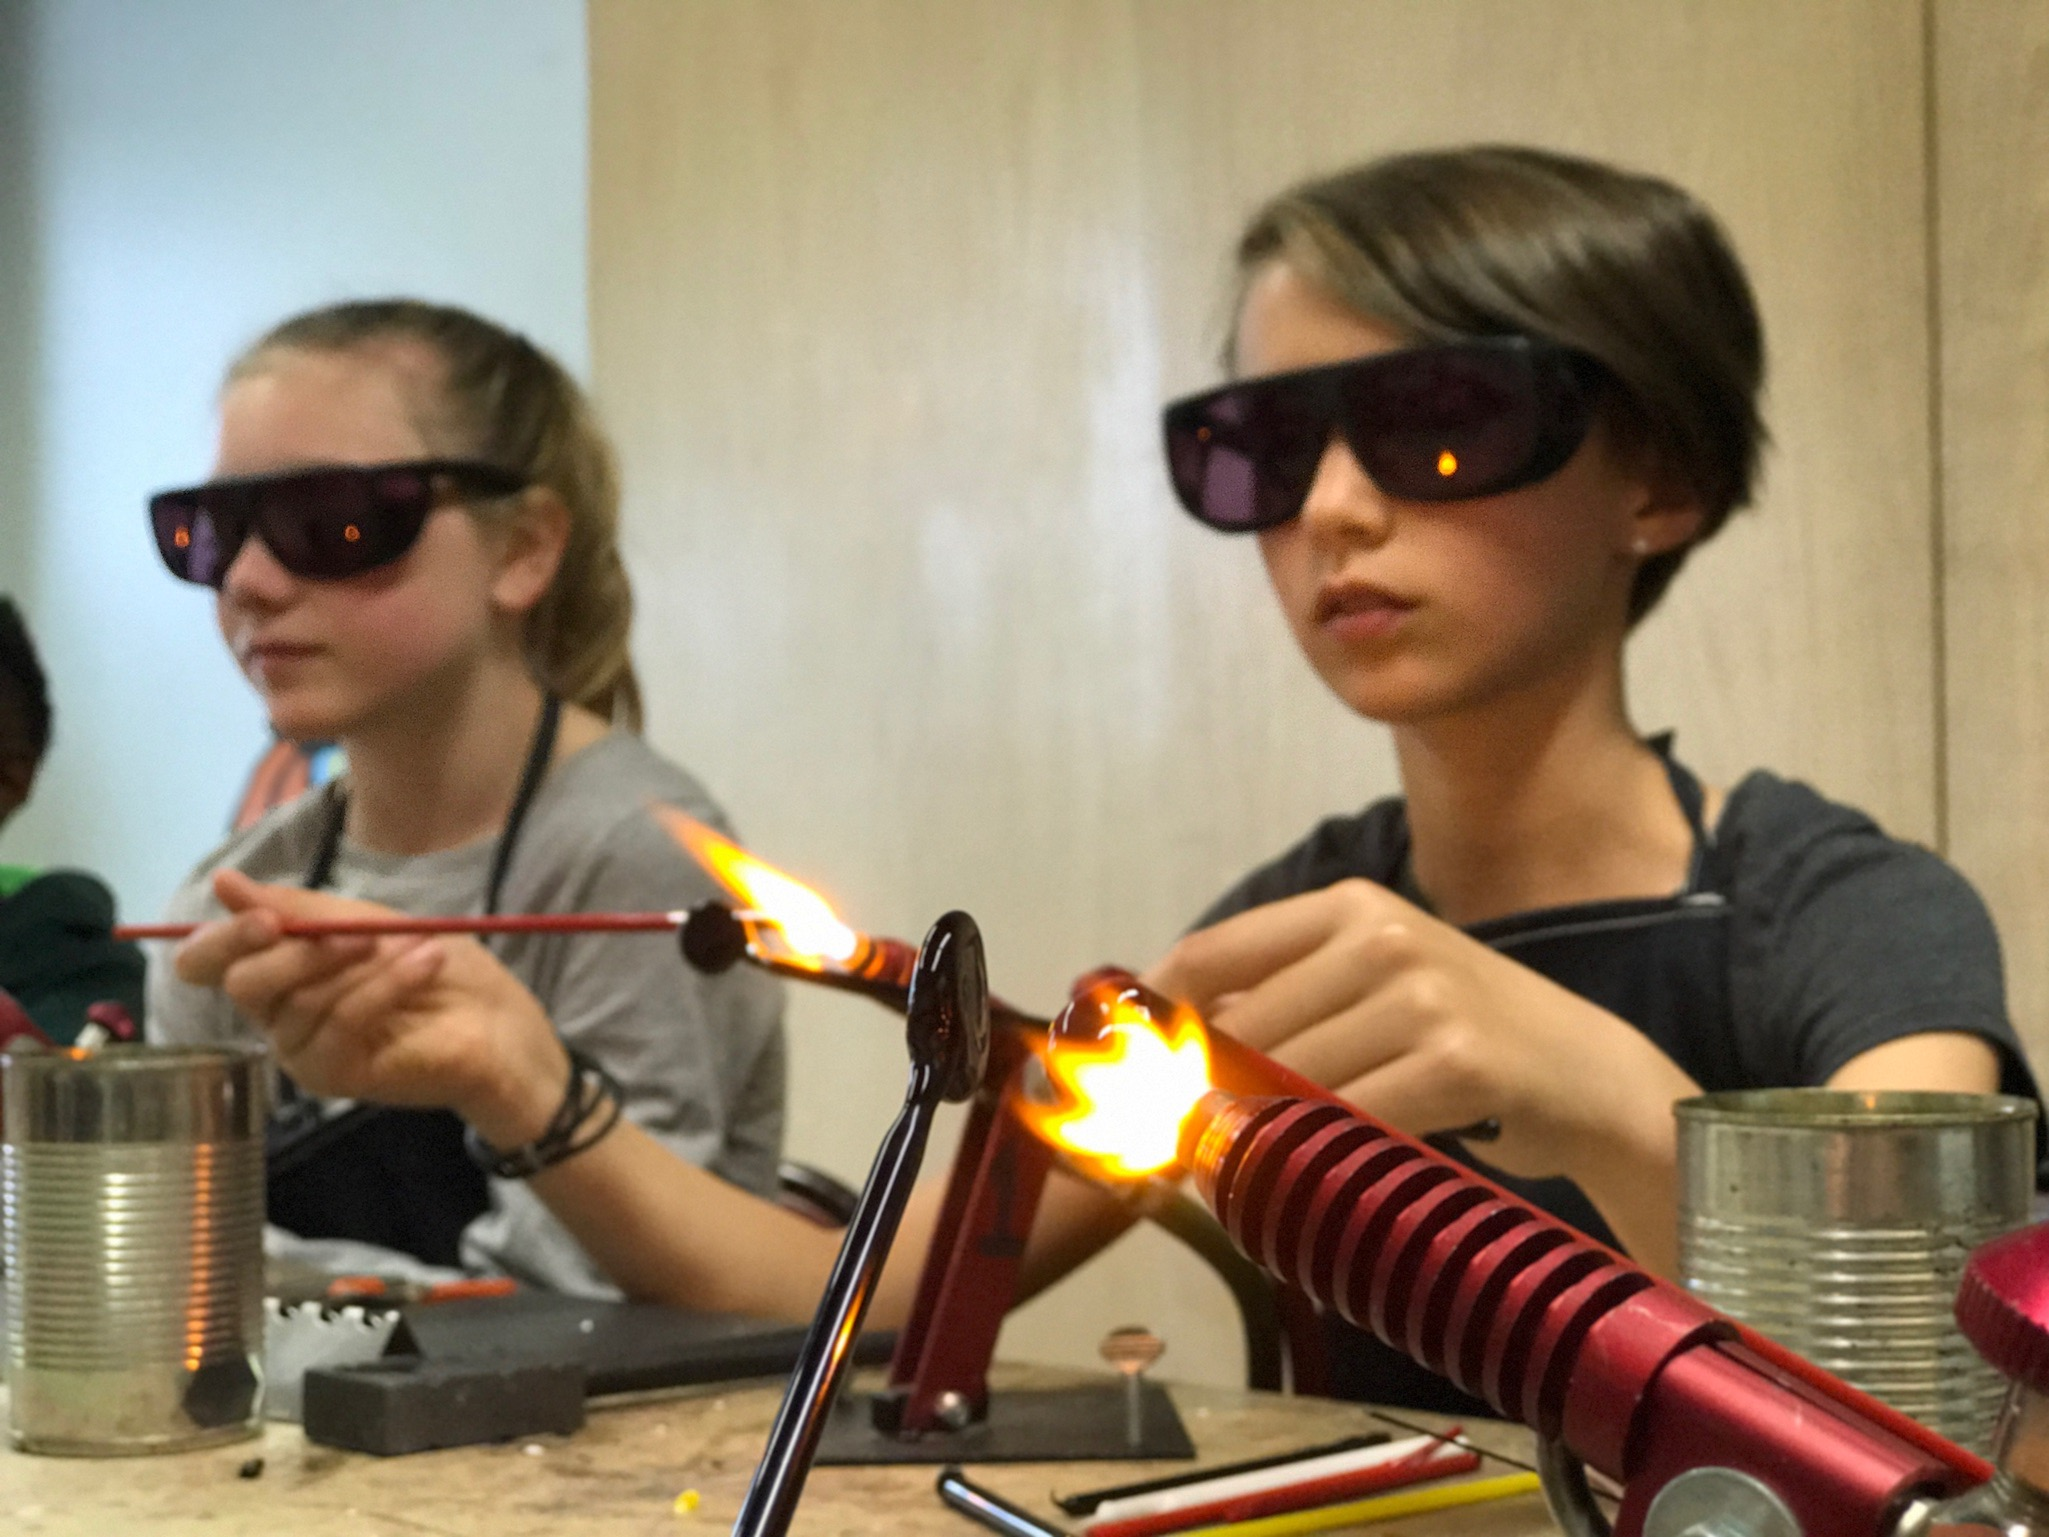 OUR MISSION - Coyote sparks creativity in young people, putting tools in their hands to build skills and forge their futures.